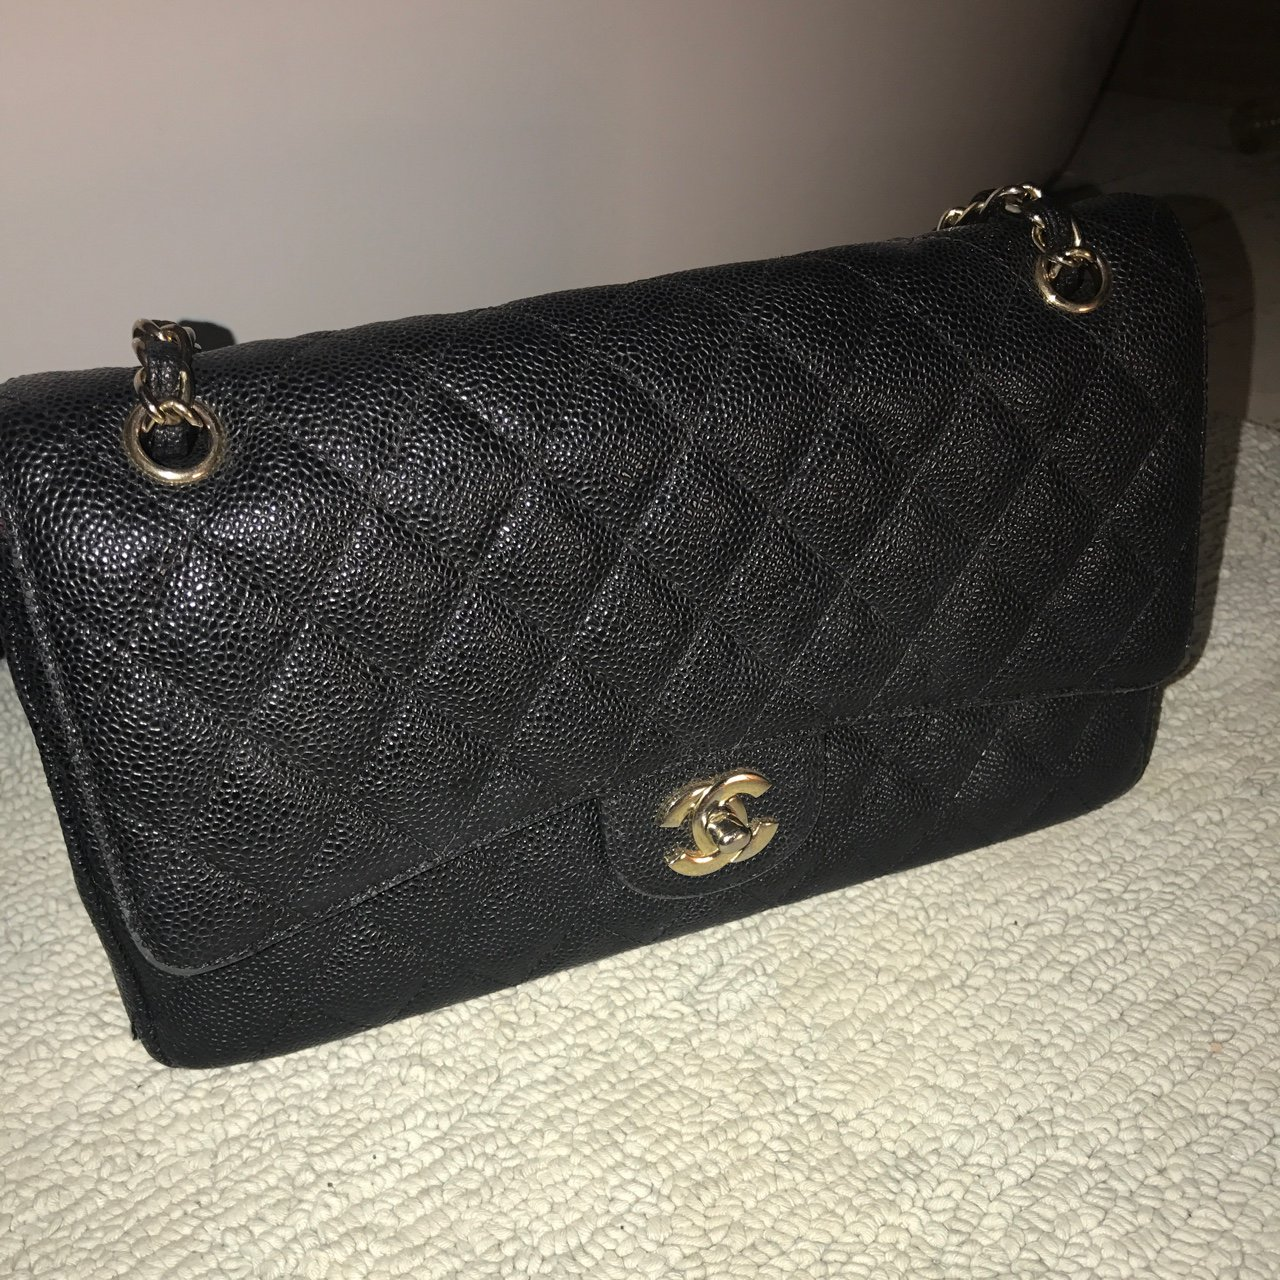 c164f5af9df799 CHANEL CAVIAR LEATHER CLASSIC BAG. Still in beaut condition, - Depop